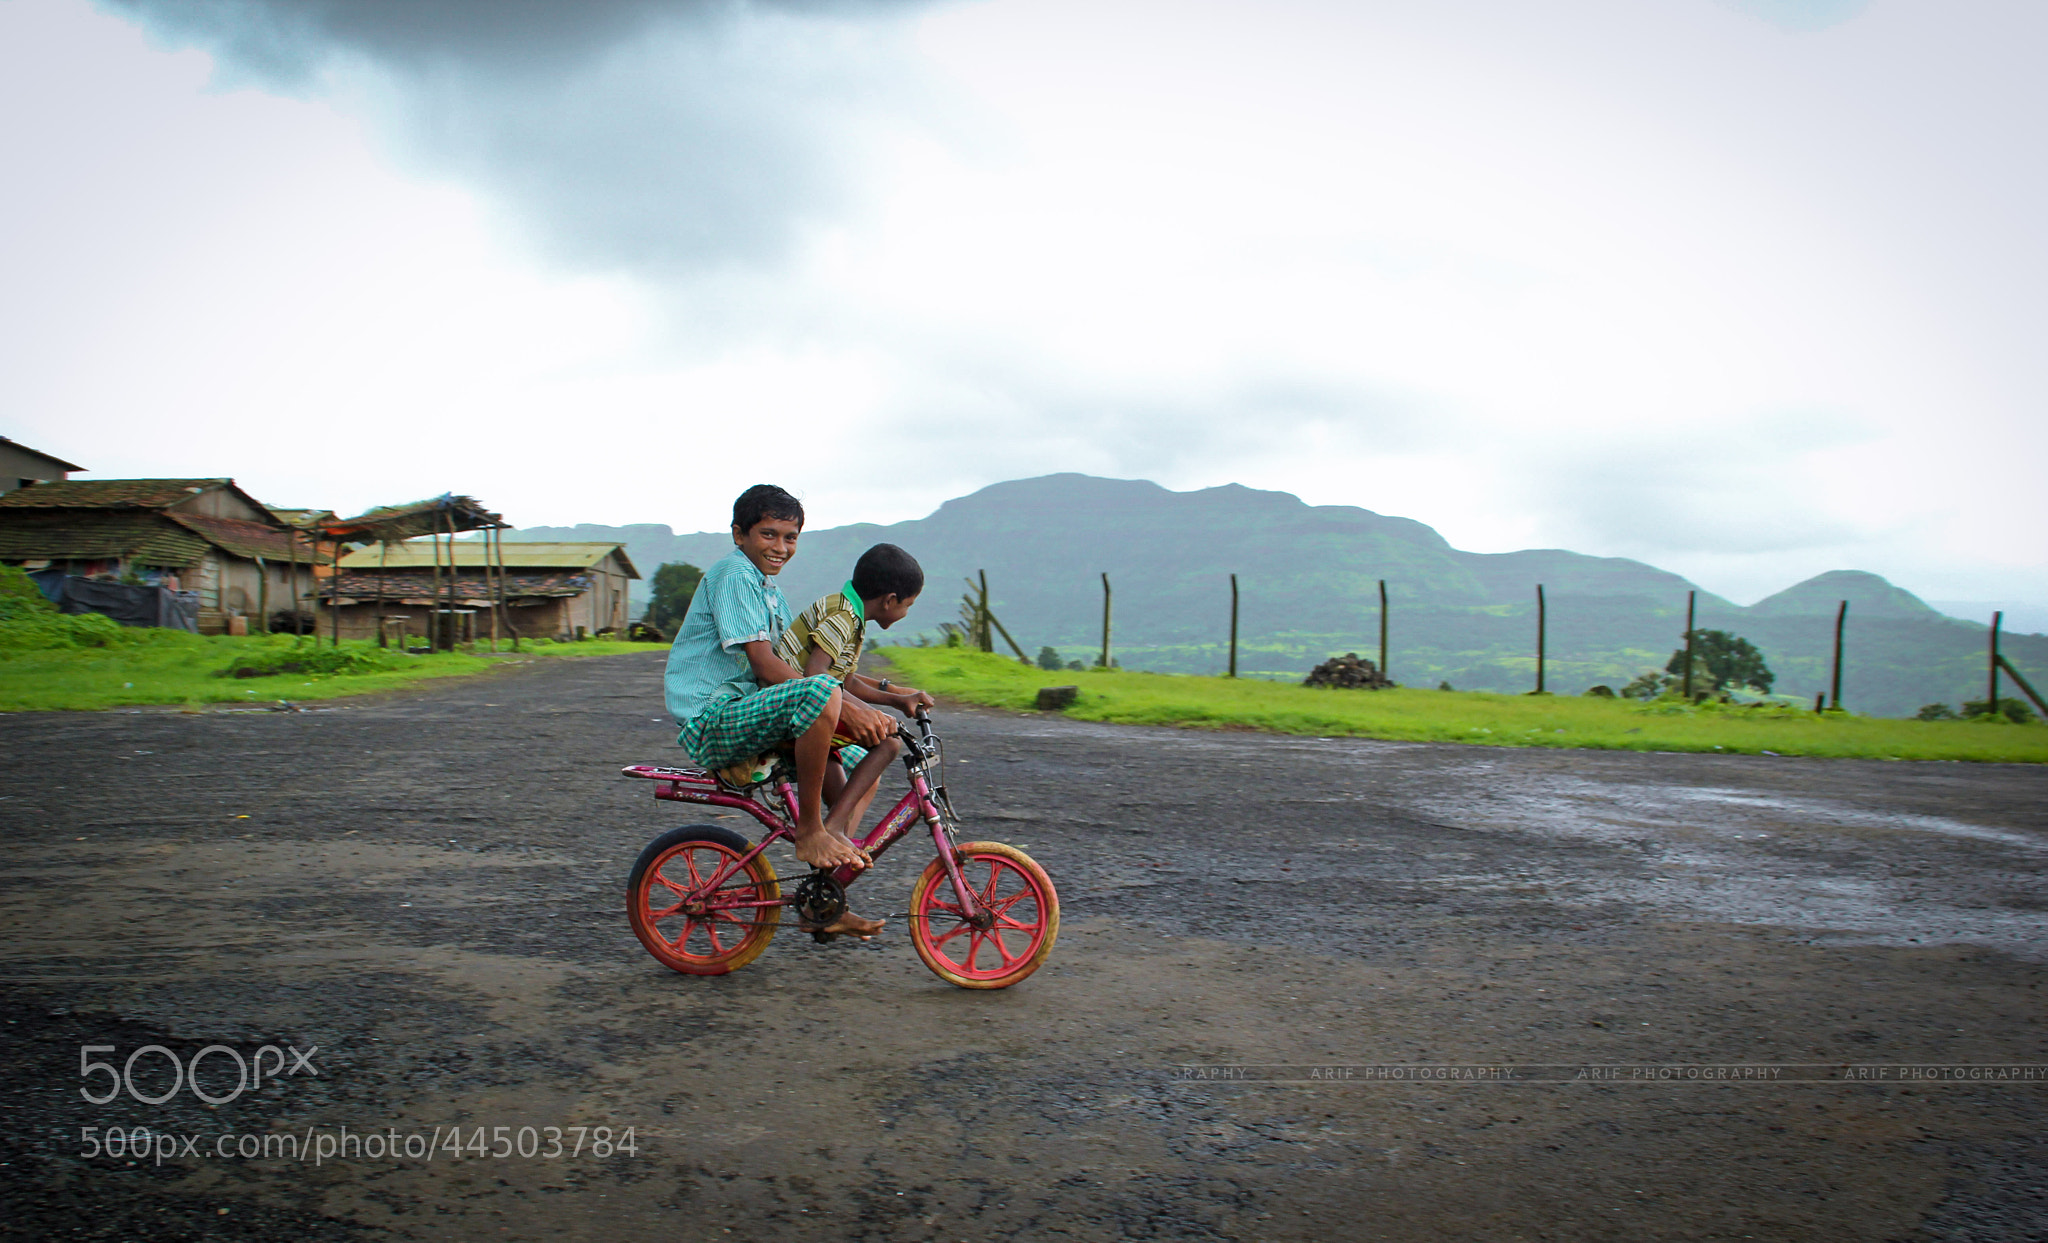 Photograph Ecstasy by Arif Mohammad on 500px